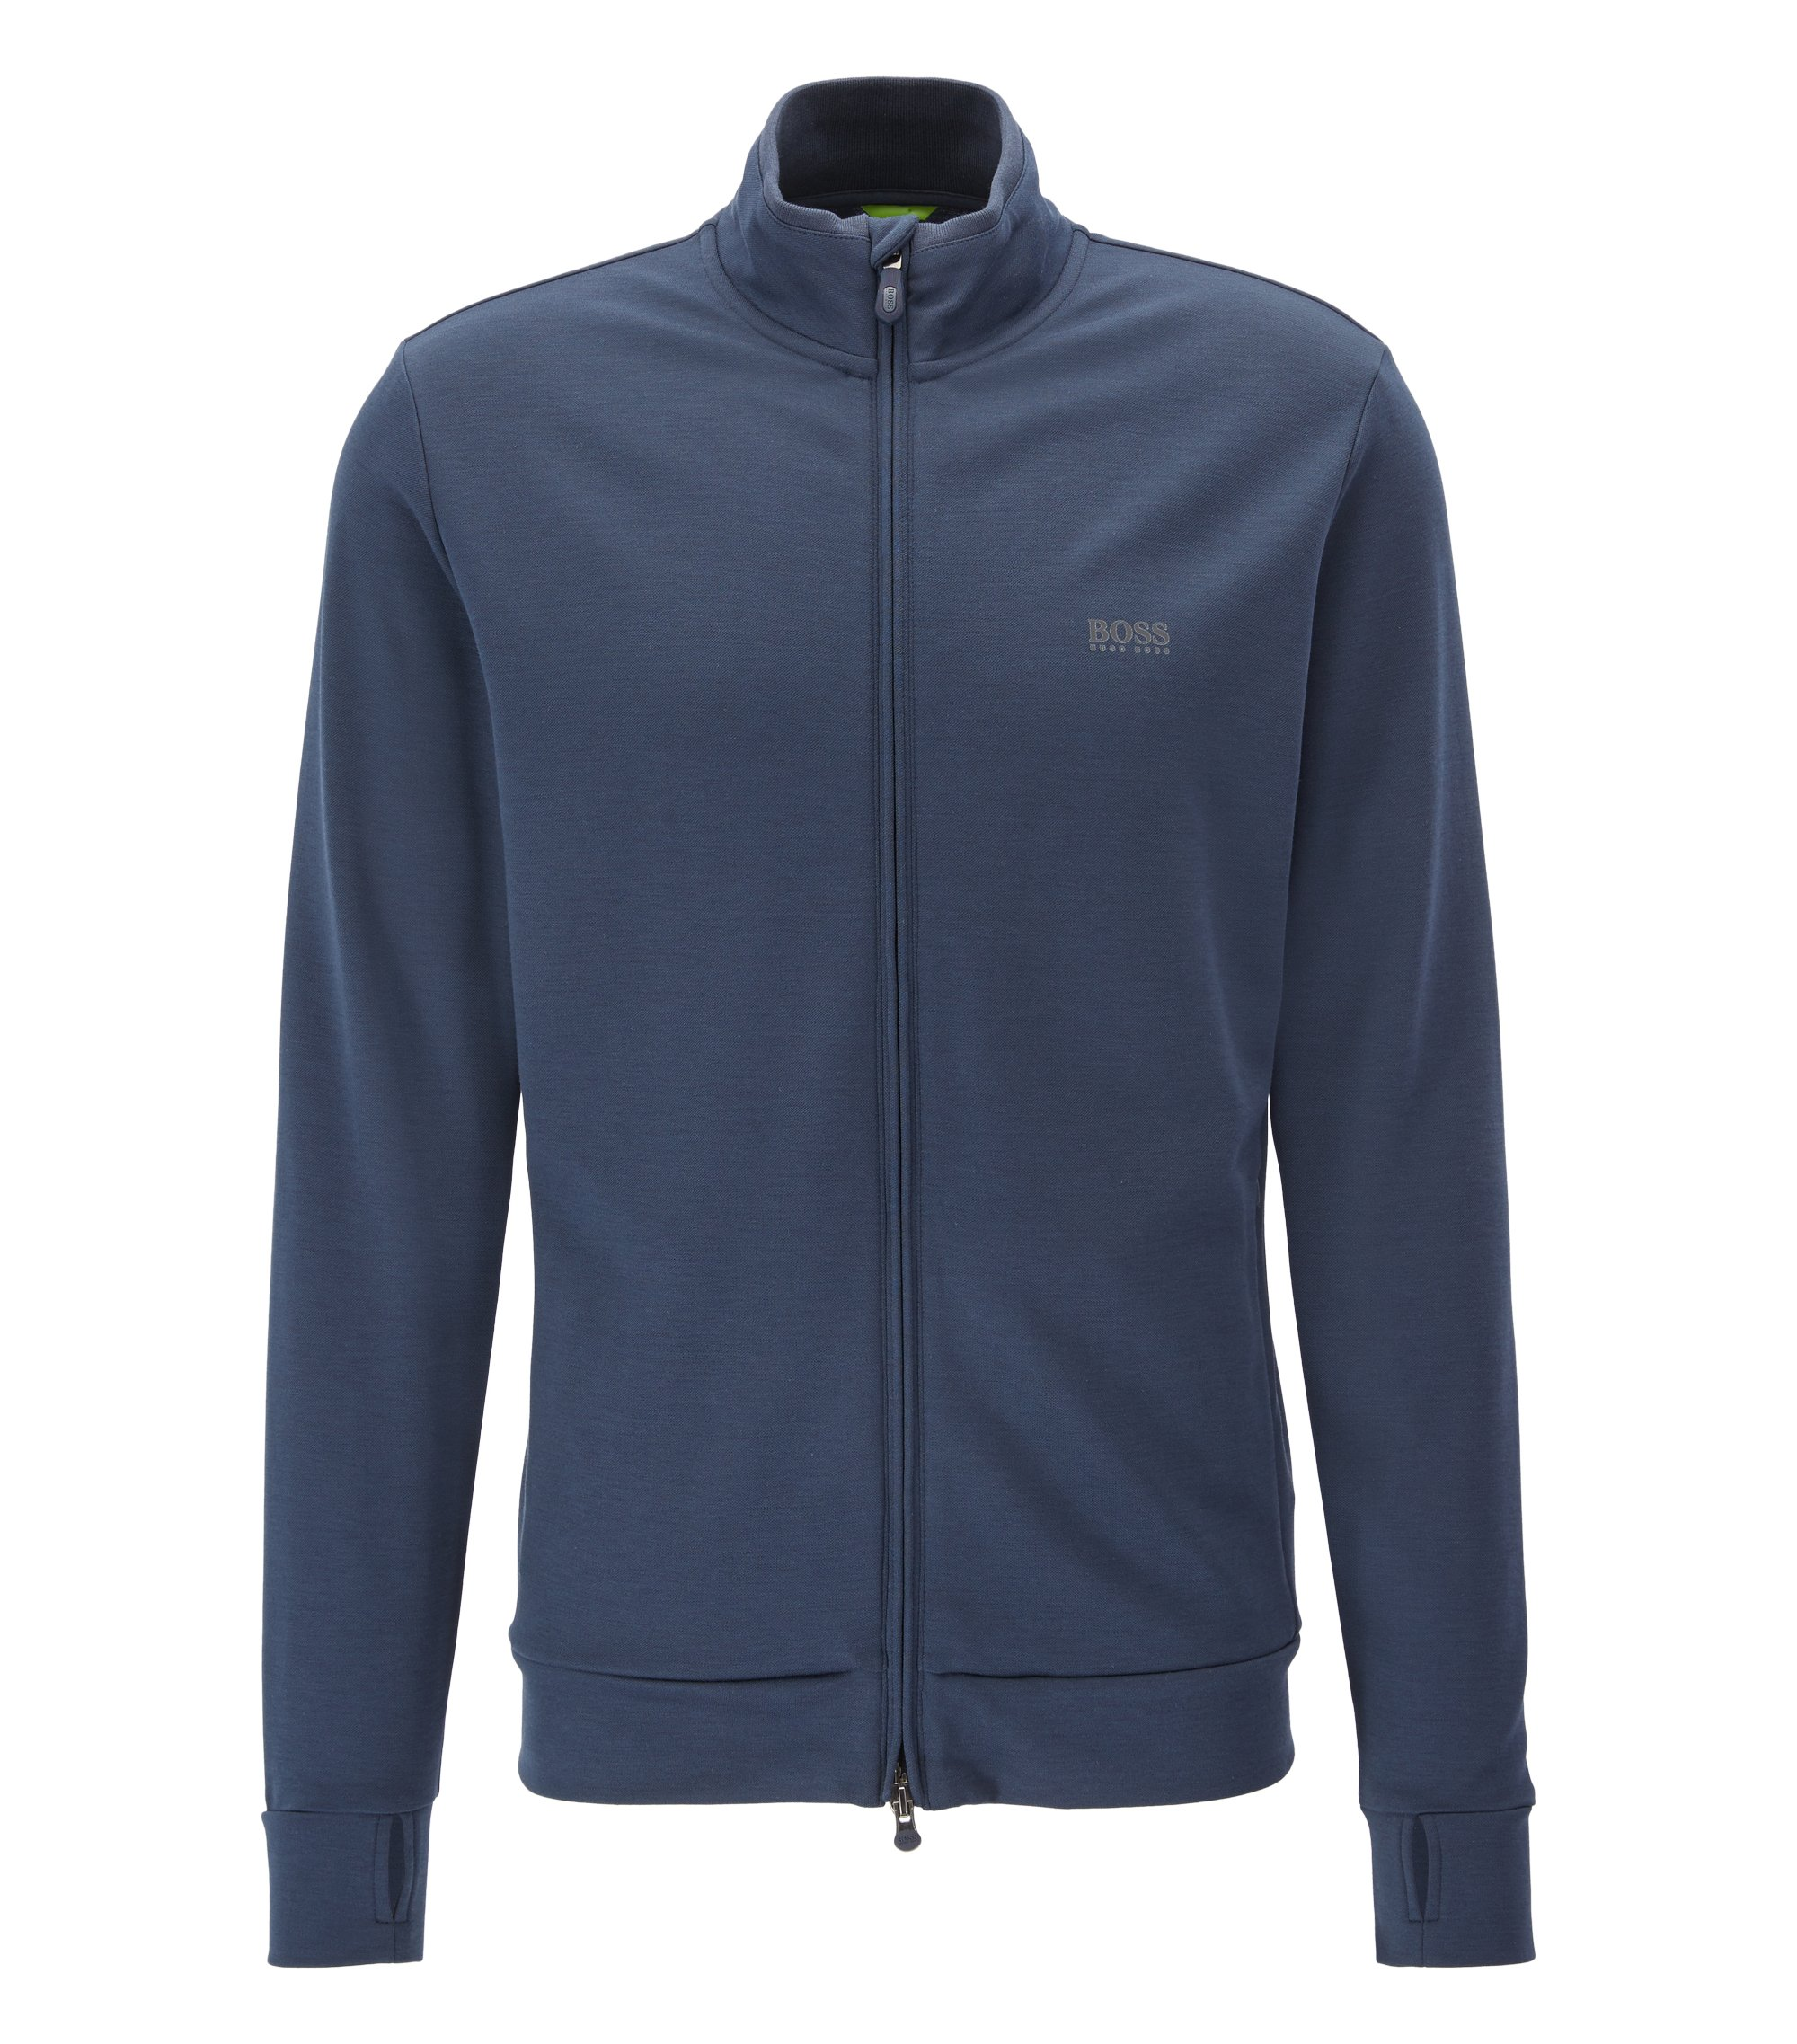 Cotton Blend Sweat Jacket | SL Tech , Dark Blue